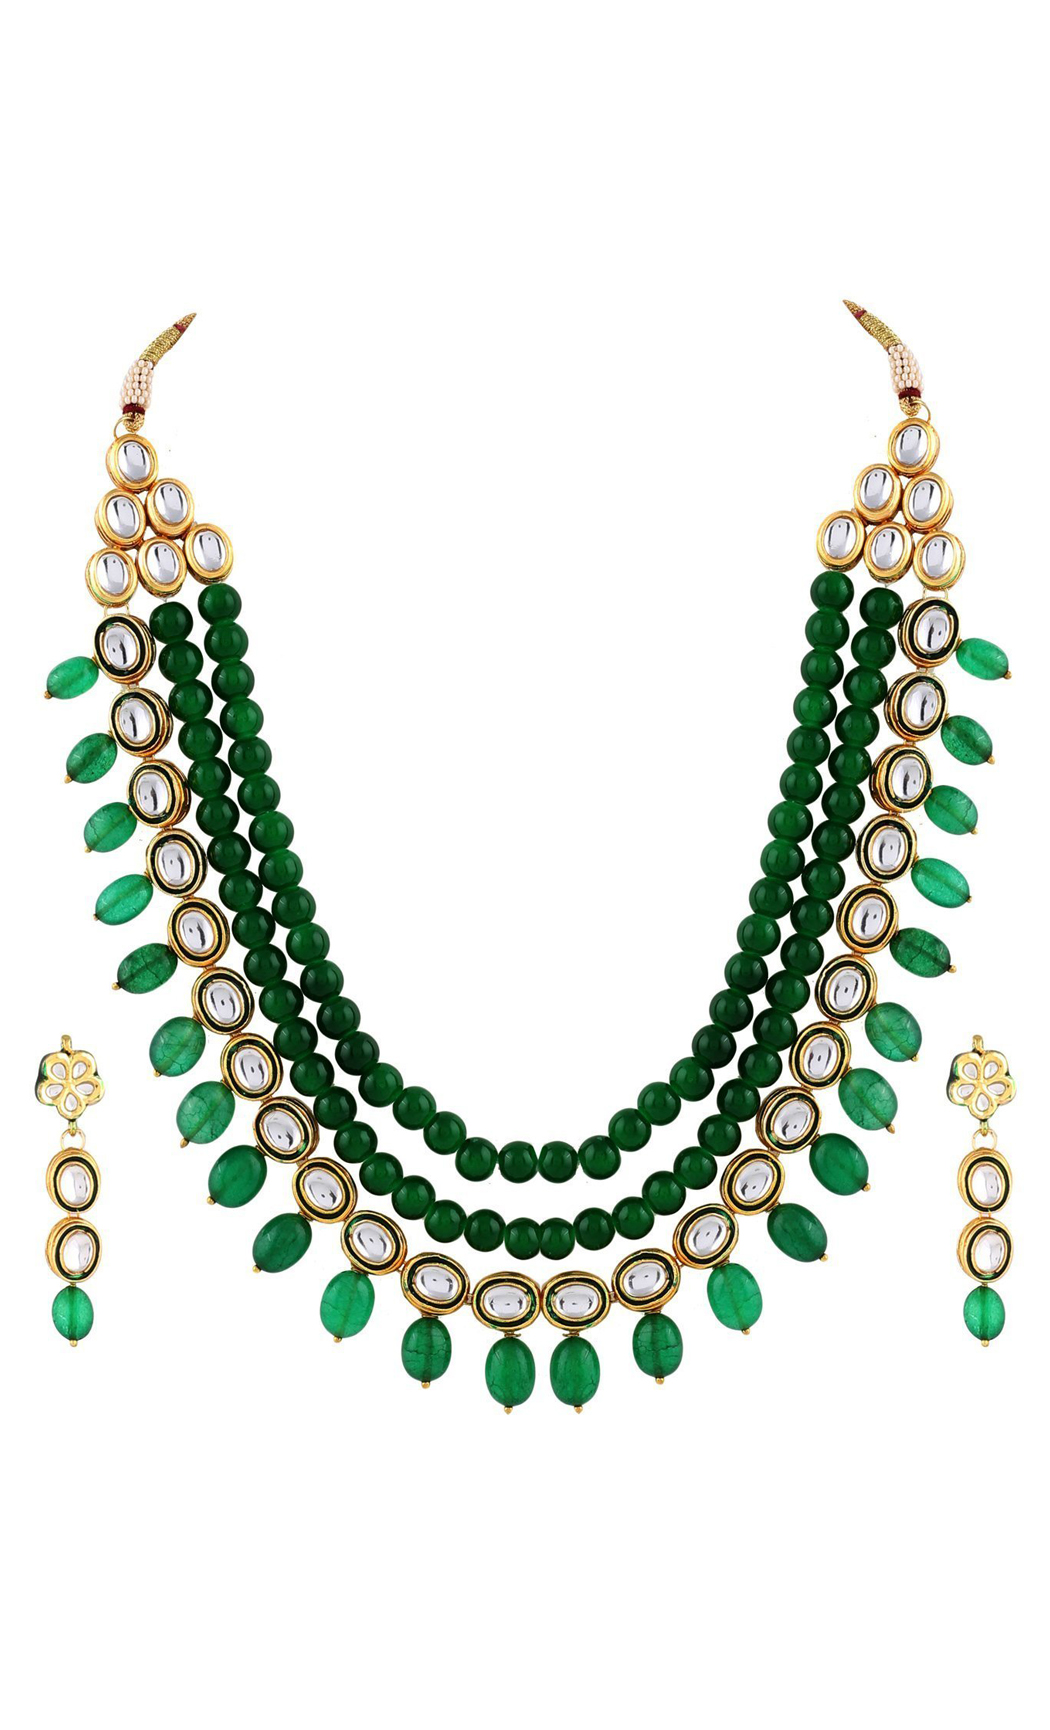 Emerald and Kunadn Necklace and Earring Set - Buy Now